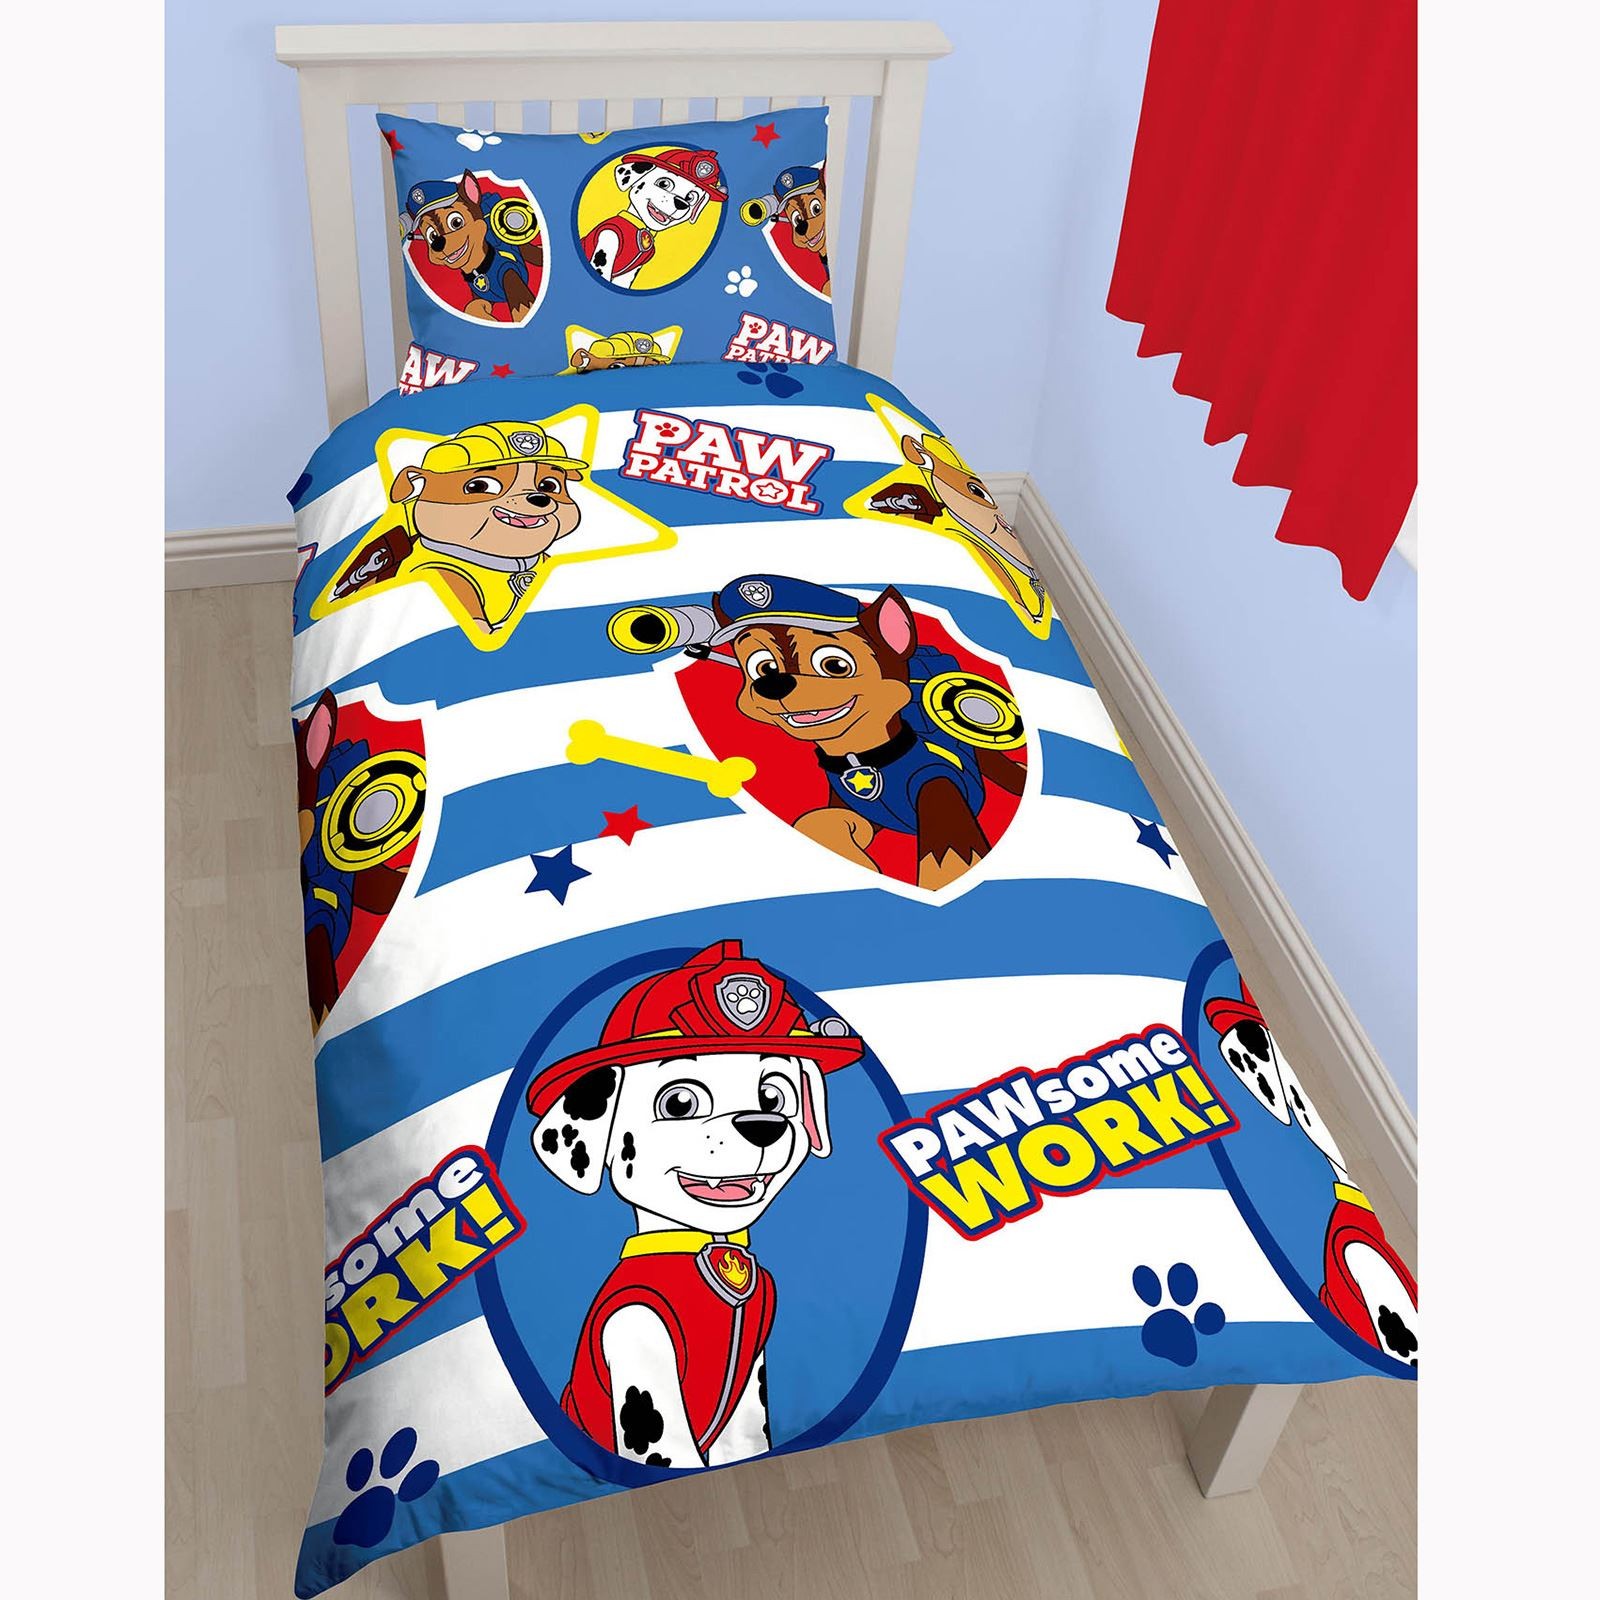 Knight Rider Bettwäsche Kids Disney Character Single Duvet Cover Sets Paw Patrol